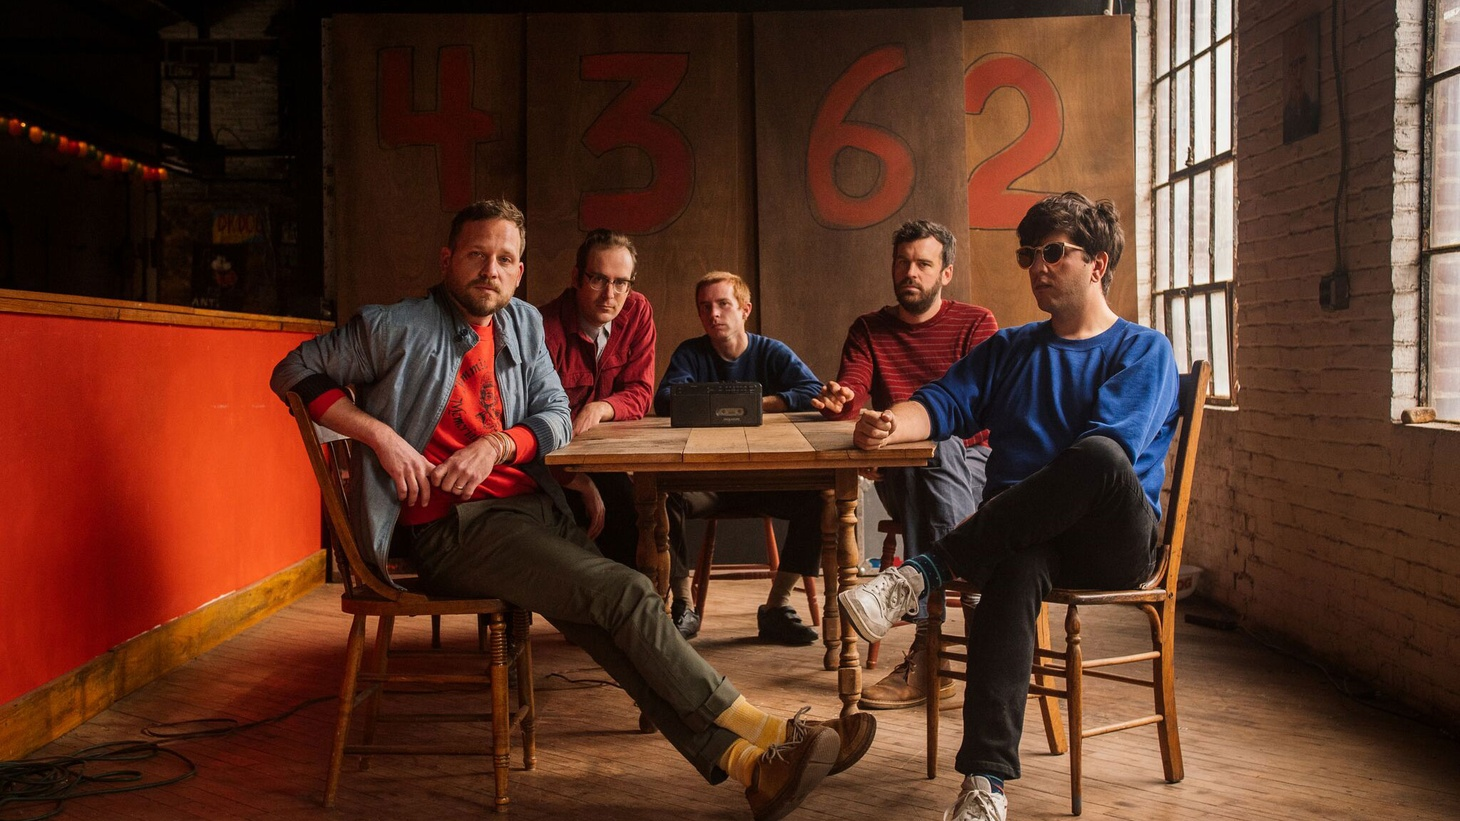 """Scott McMicken has been co-fronting Dr. Dog for the past decade and a half but that doesn't stop him from feeling like he's """"in a totally new band right now."""""""